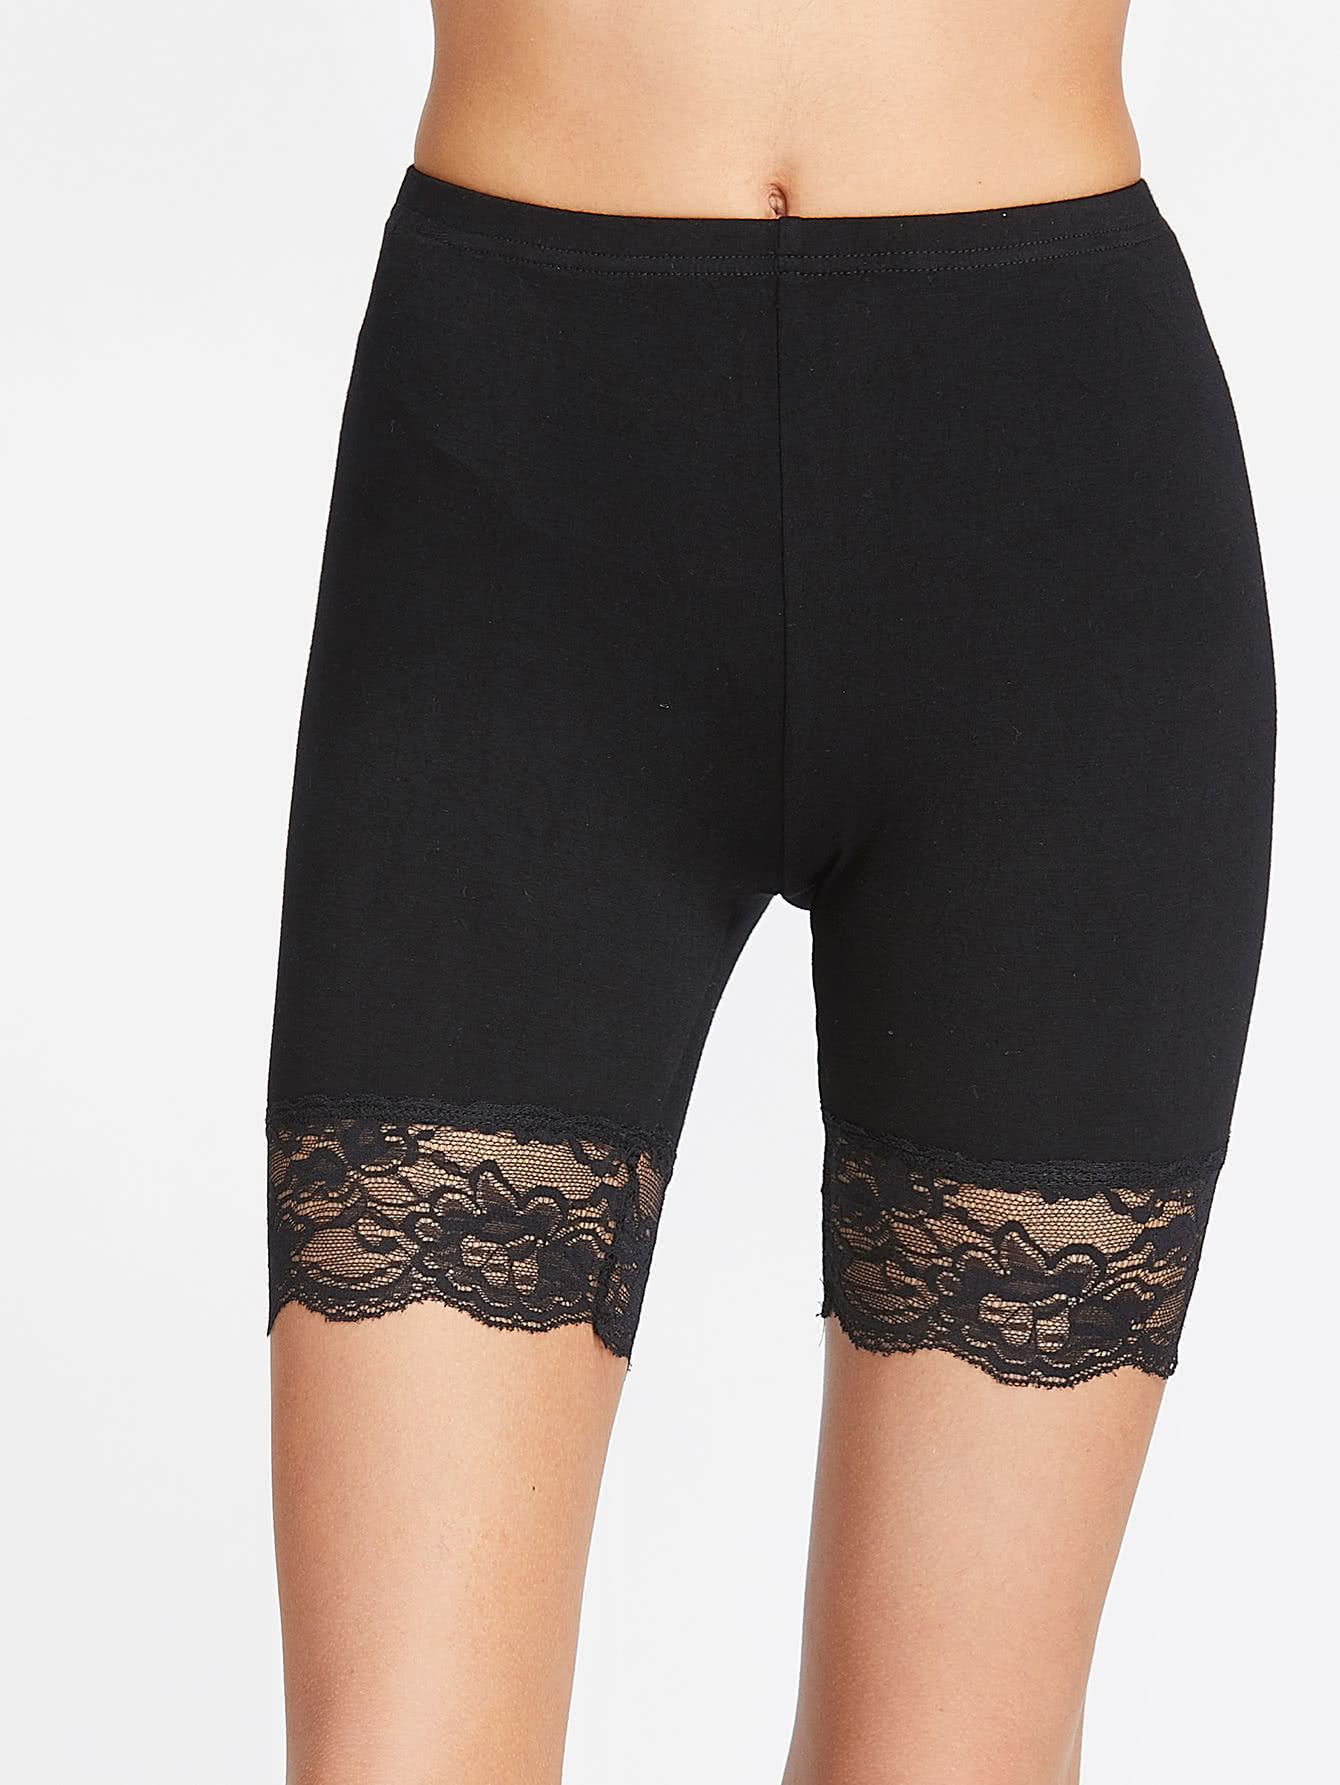 Browse the selection of black leggings at chaplin-favor.tk and receive free shipping.